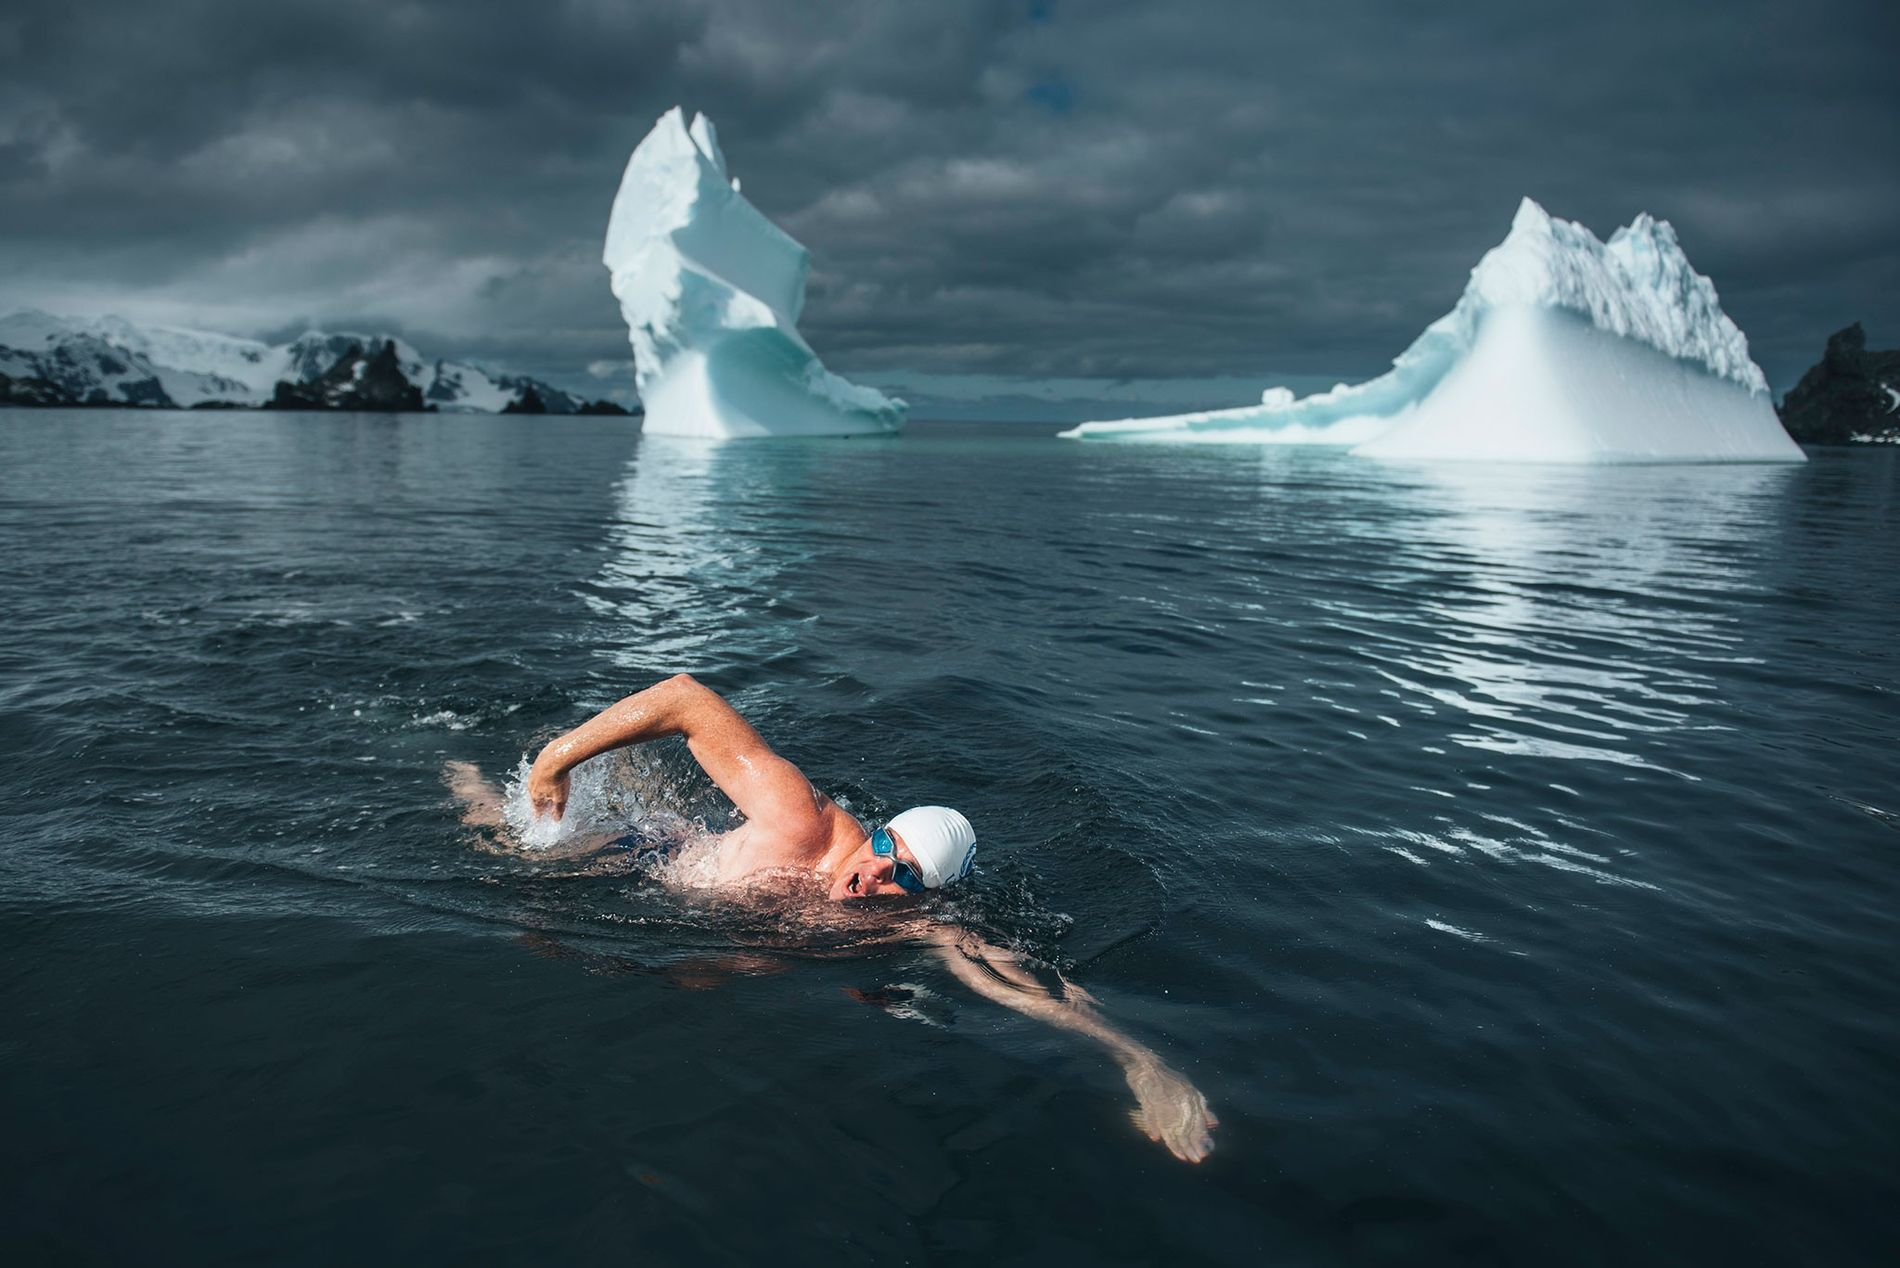 Lewis Pugh, accompanied by icebergs, swims in near-freezing Antarctic waters.